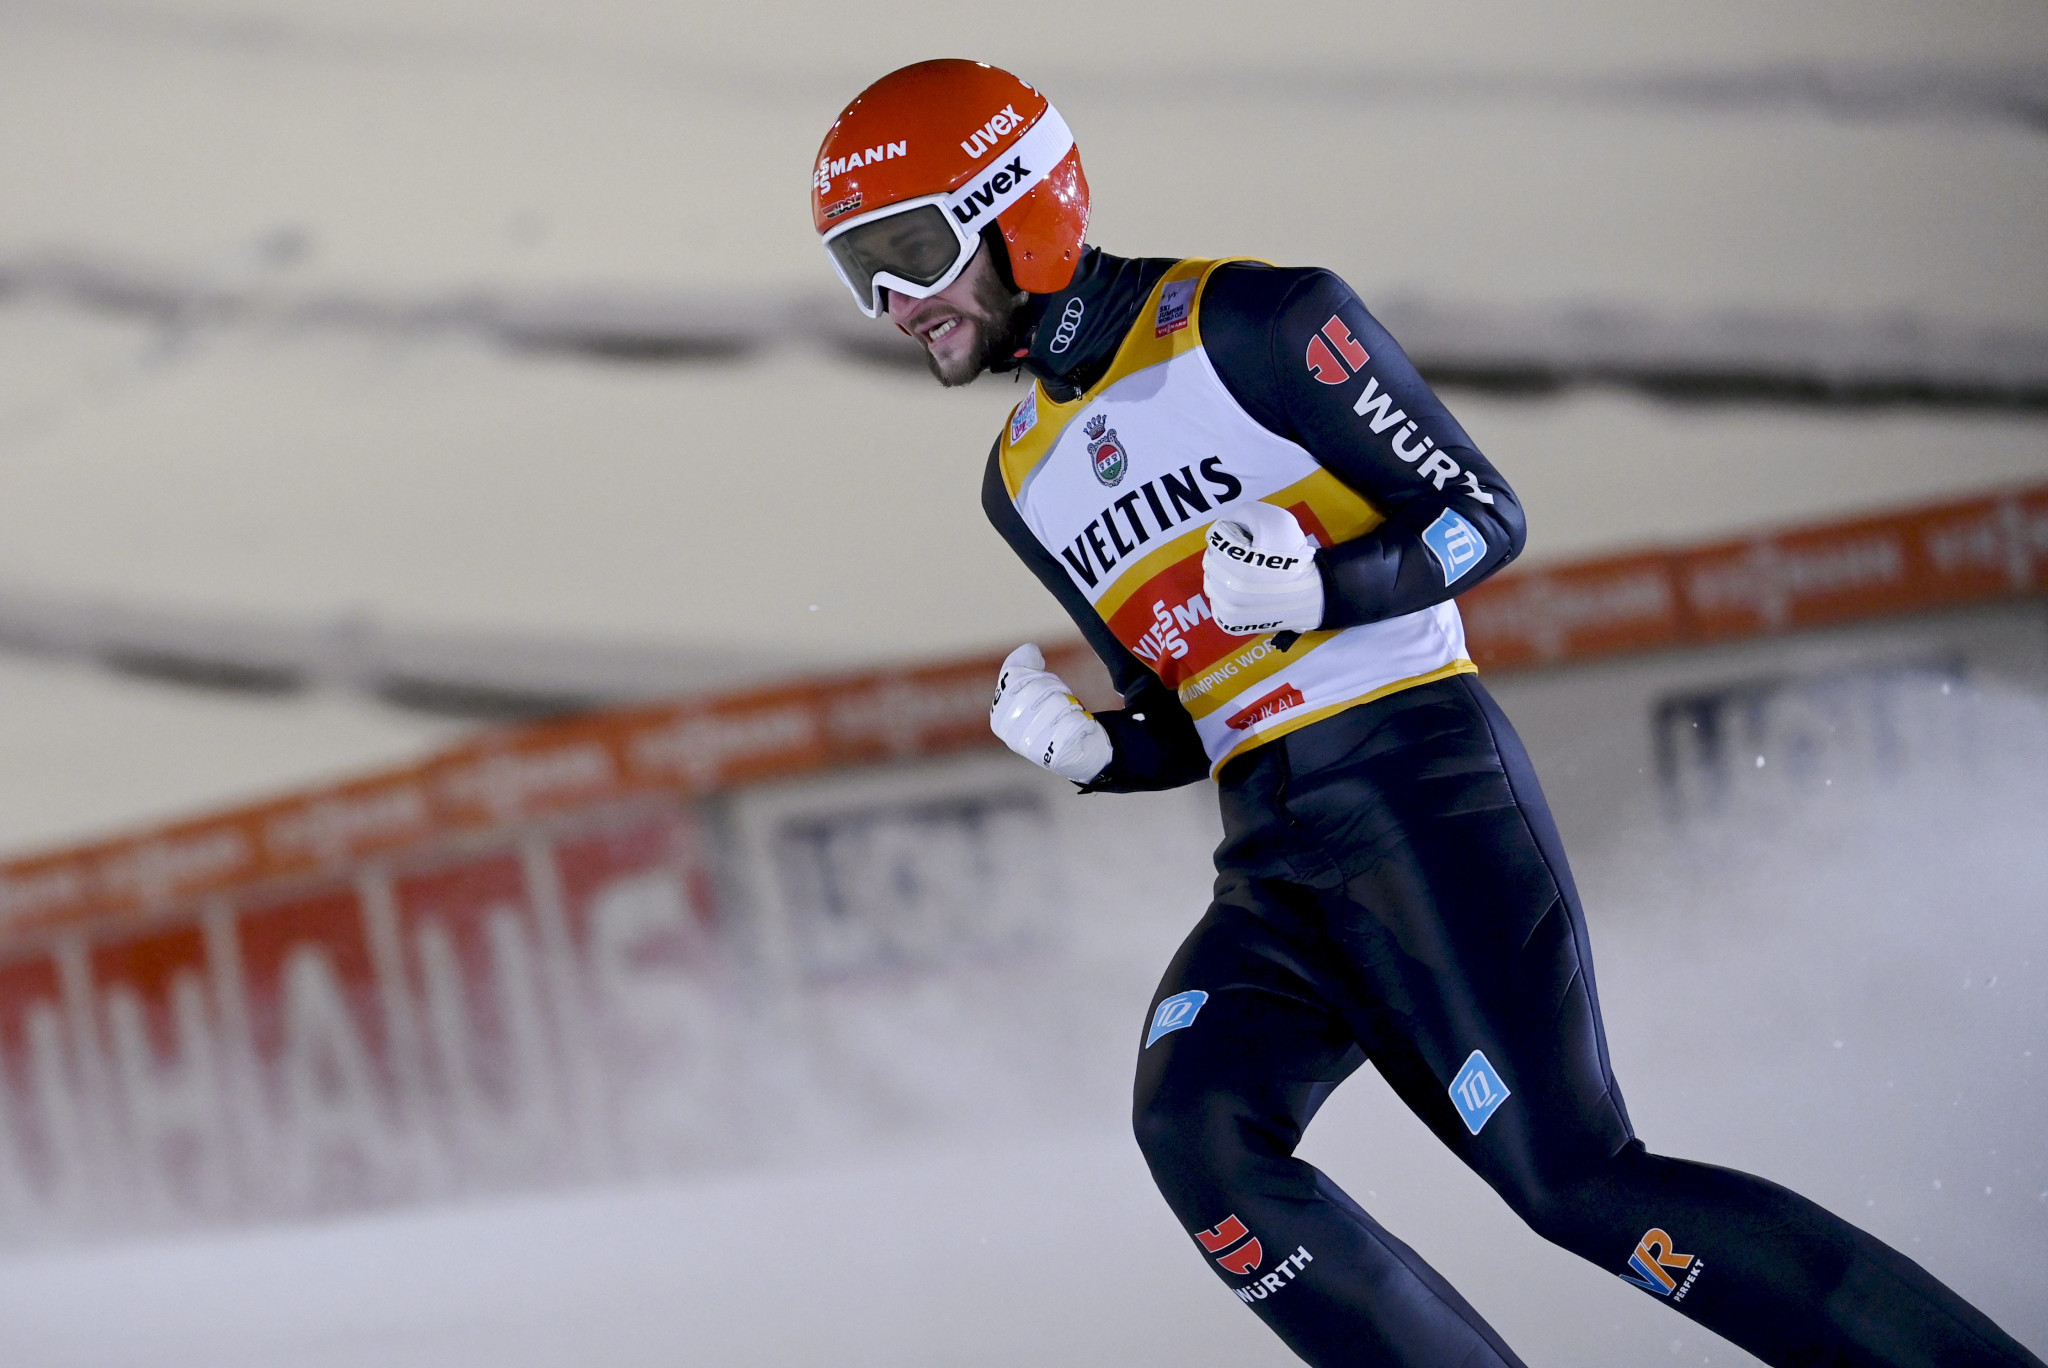 Markus Eisenbichler of Germany will aim to continue his good start to the FIS Ski Jumping World Cup season ©Getty Images